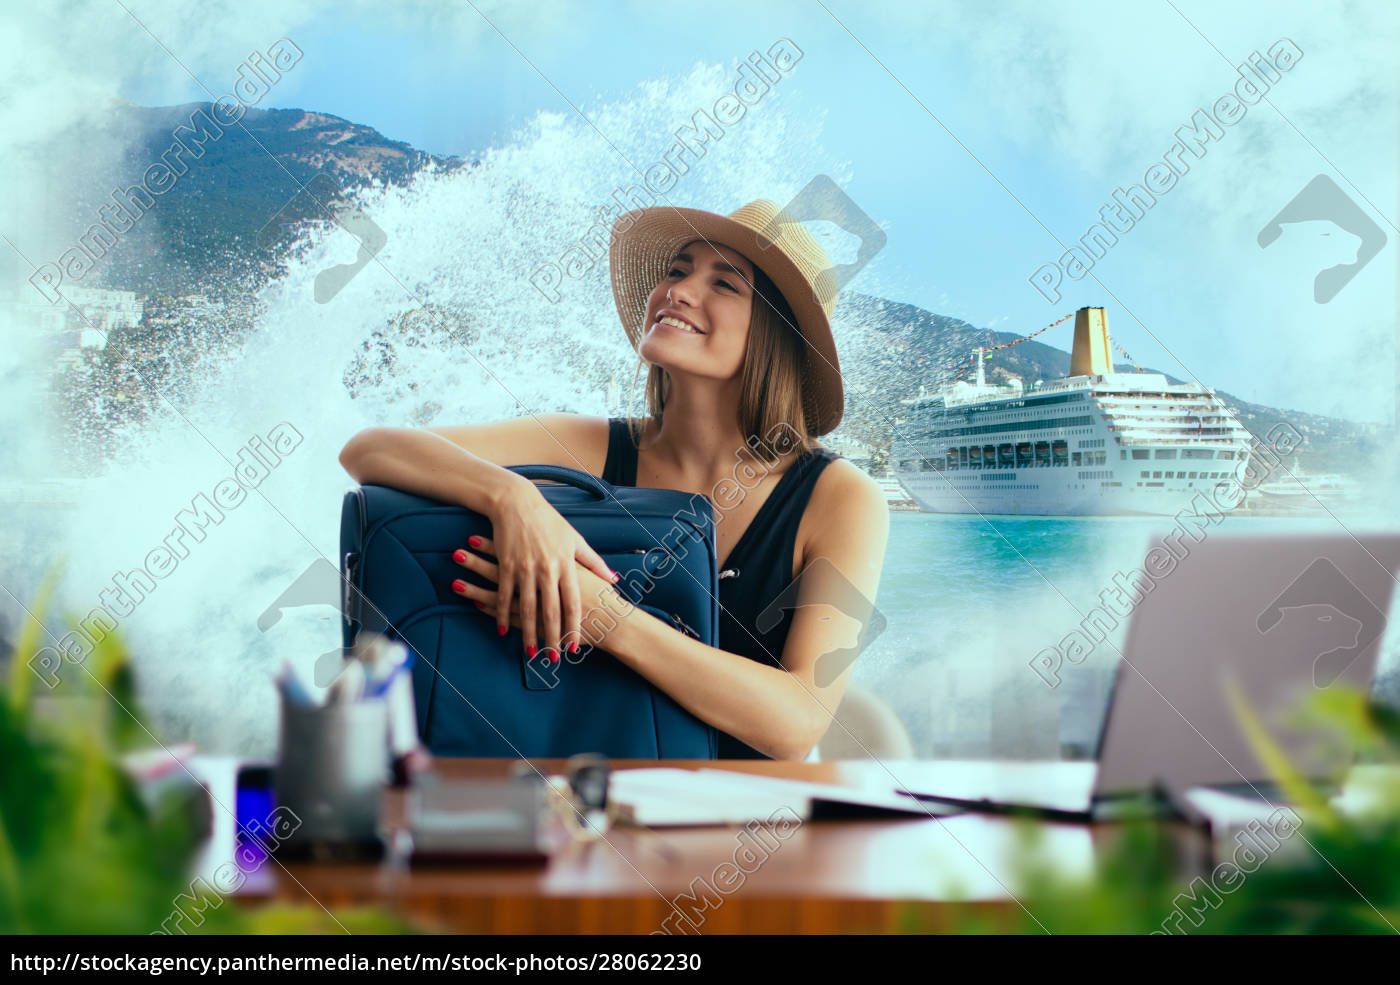 woman, with, suitcase, daydreaming, about, journey - 28062230